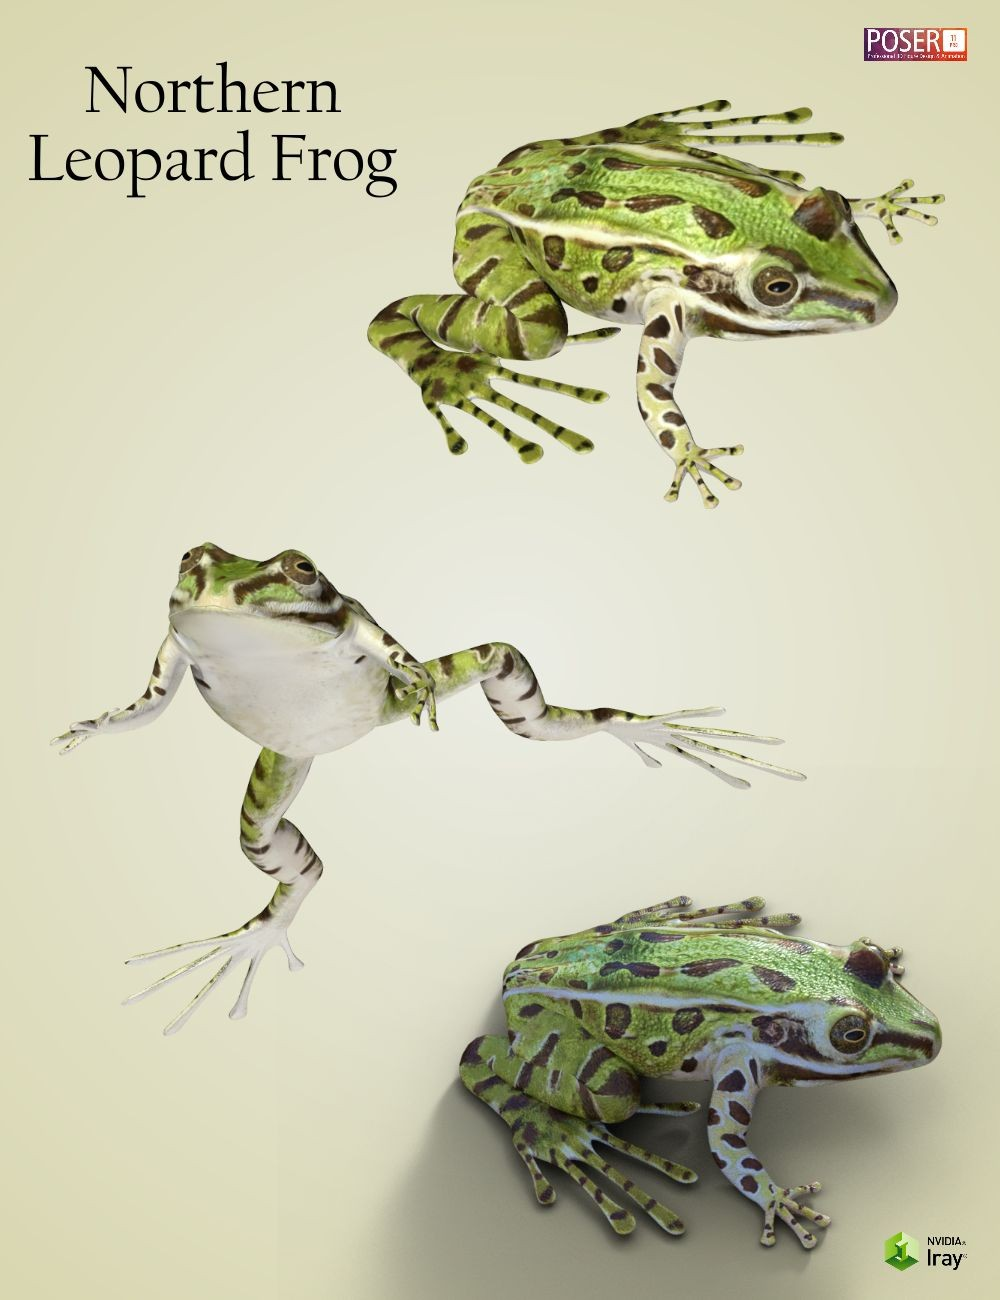 wonders of frogs Learn more about the northern tinker frog - with amazing northern tinker frog photos and facts on arkive help us share the wonders of the natural world donate.